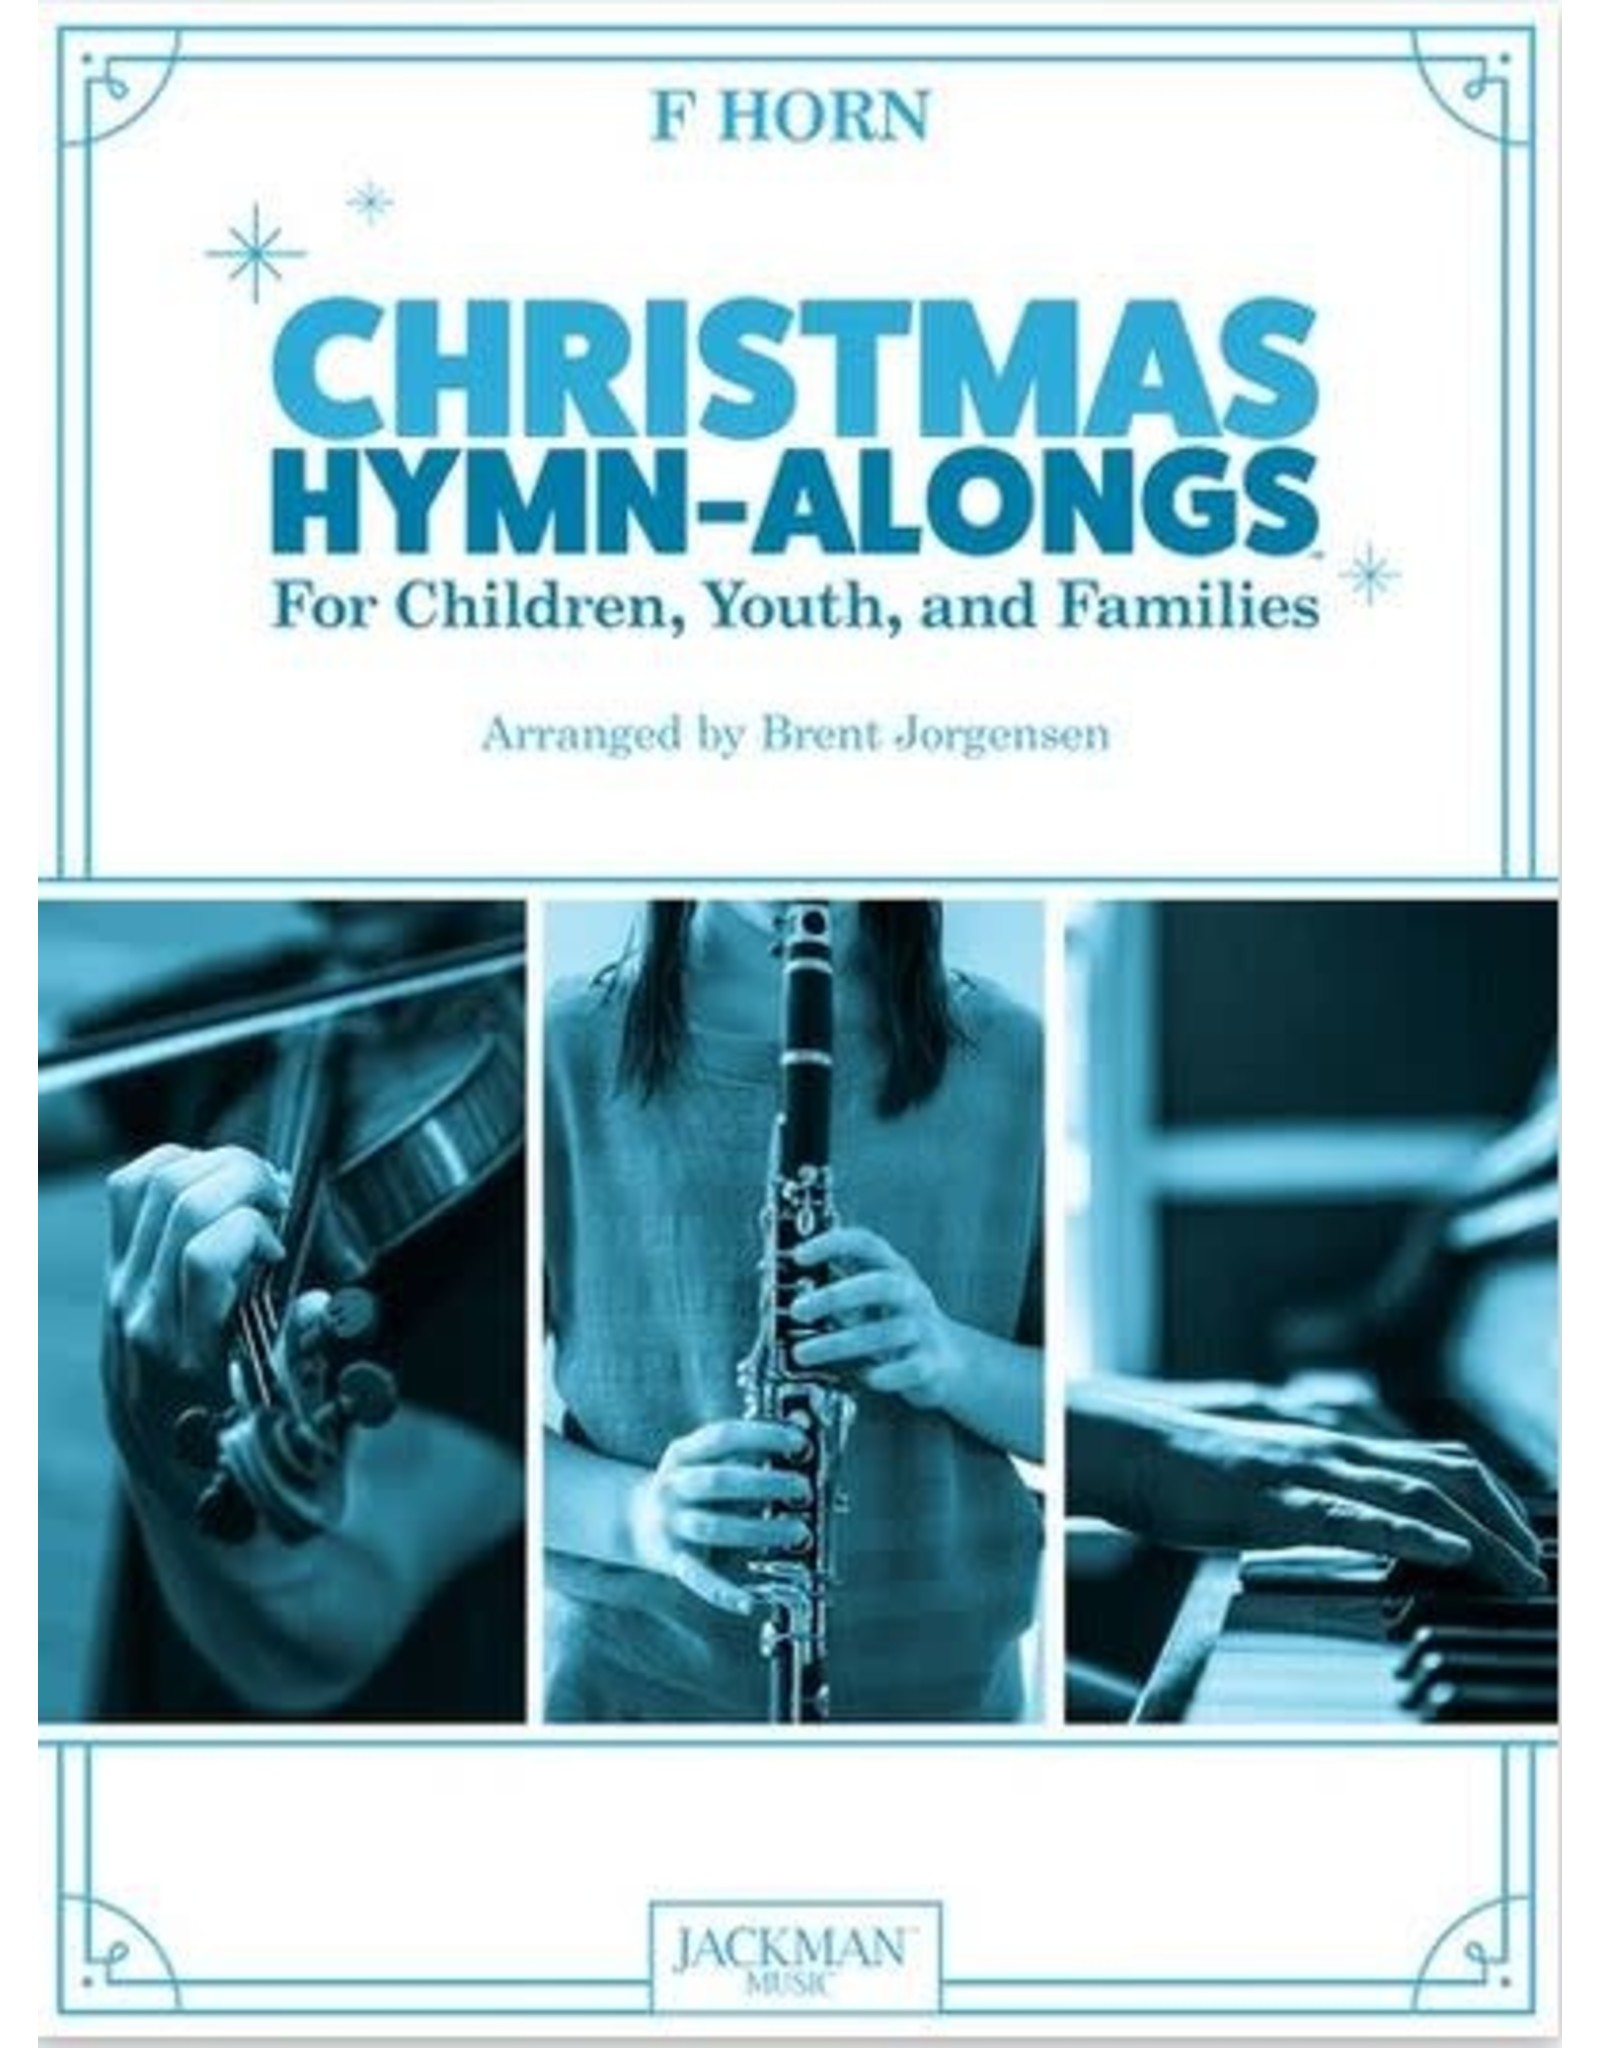 Jackman Music Christmas Hymn-Alongs - arr. Brent Jorgensen - French Horn